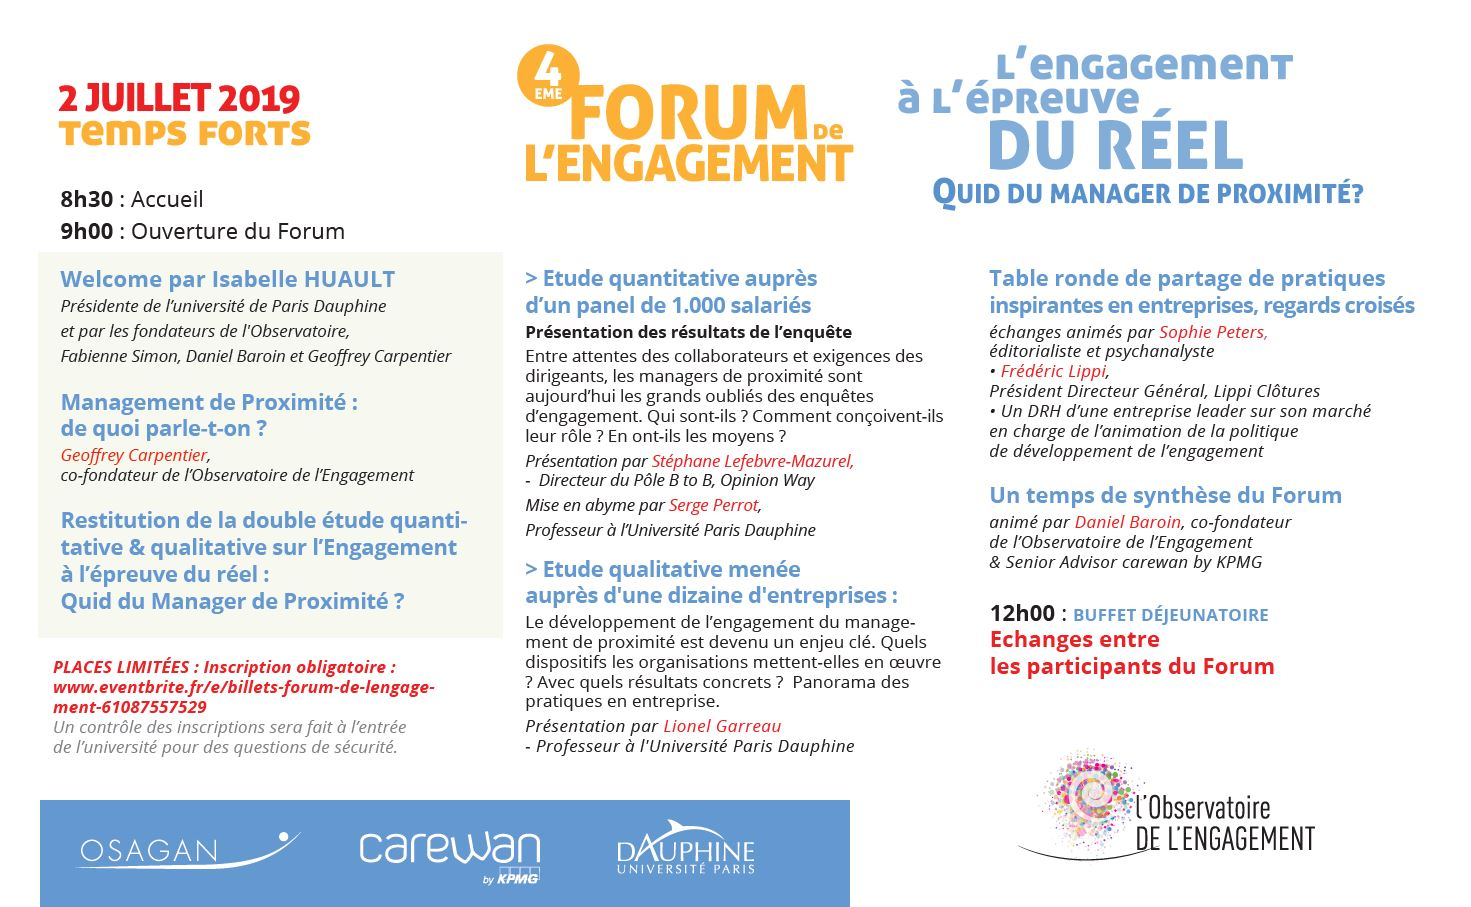 programme forum engagement 2 juillet